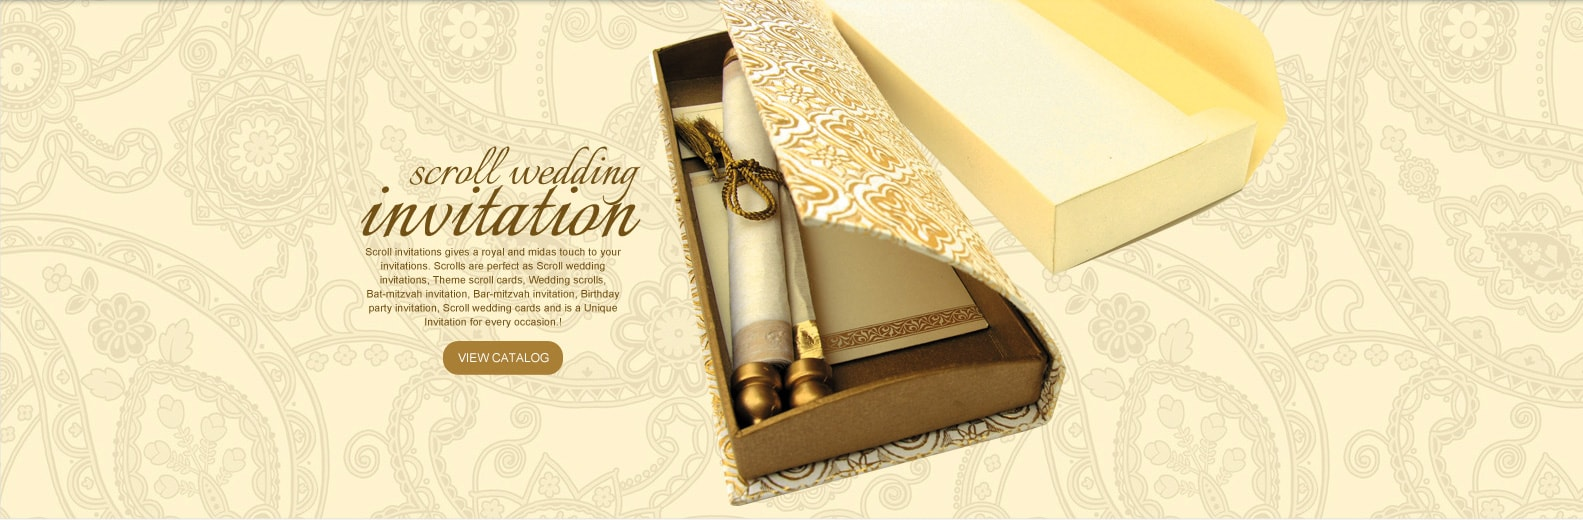 Scroll Invitations, Bat & Bar Mitzvah Invitations, Wedding ...